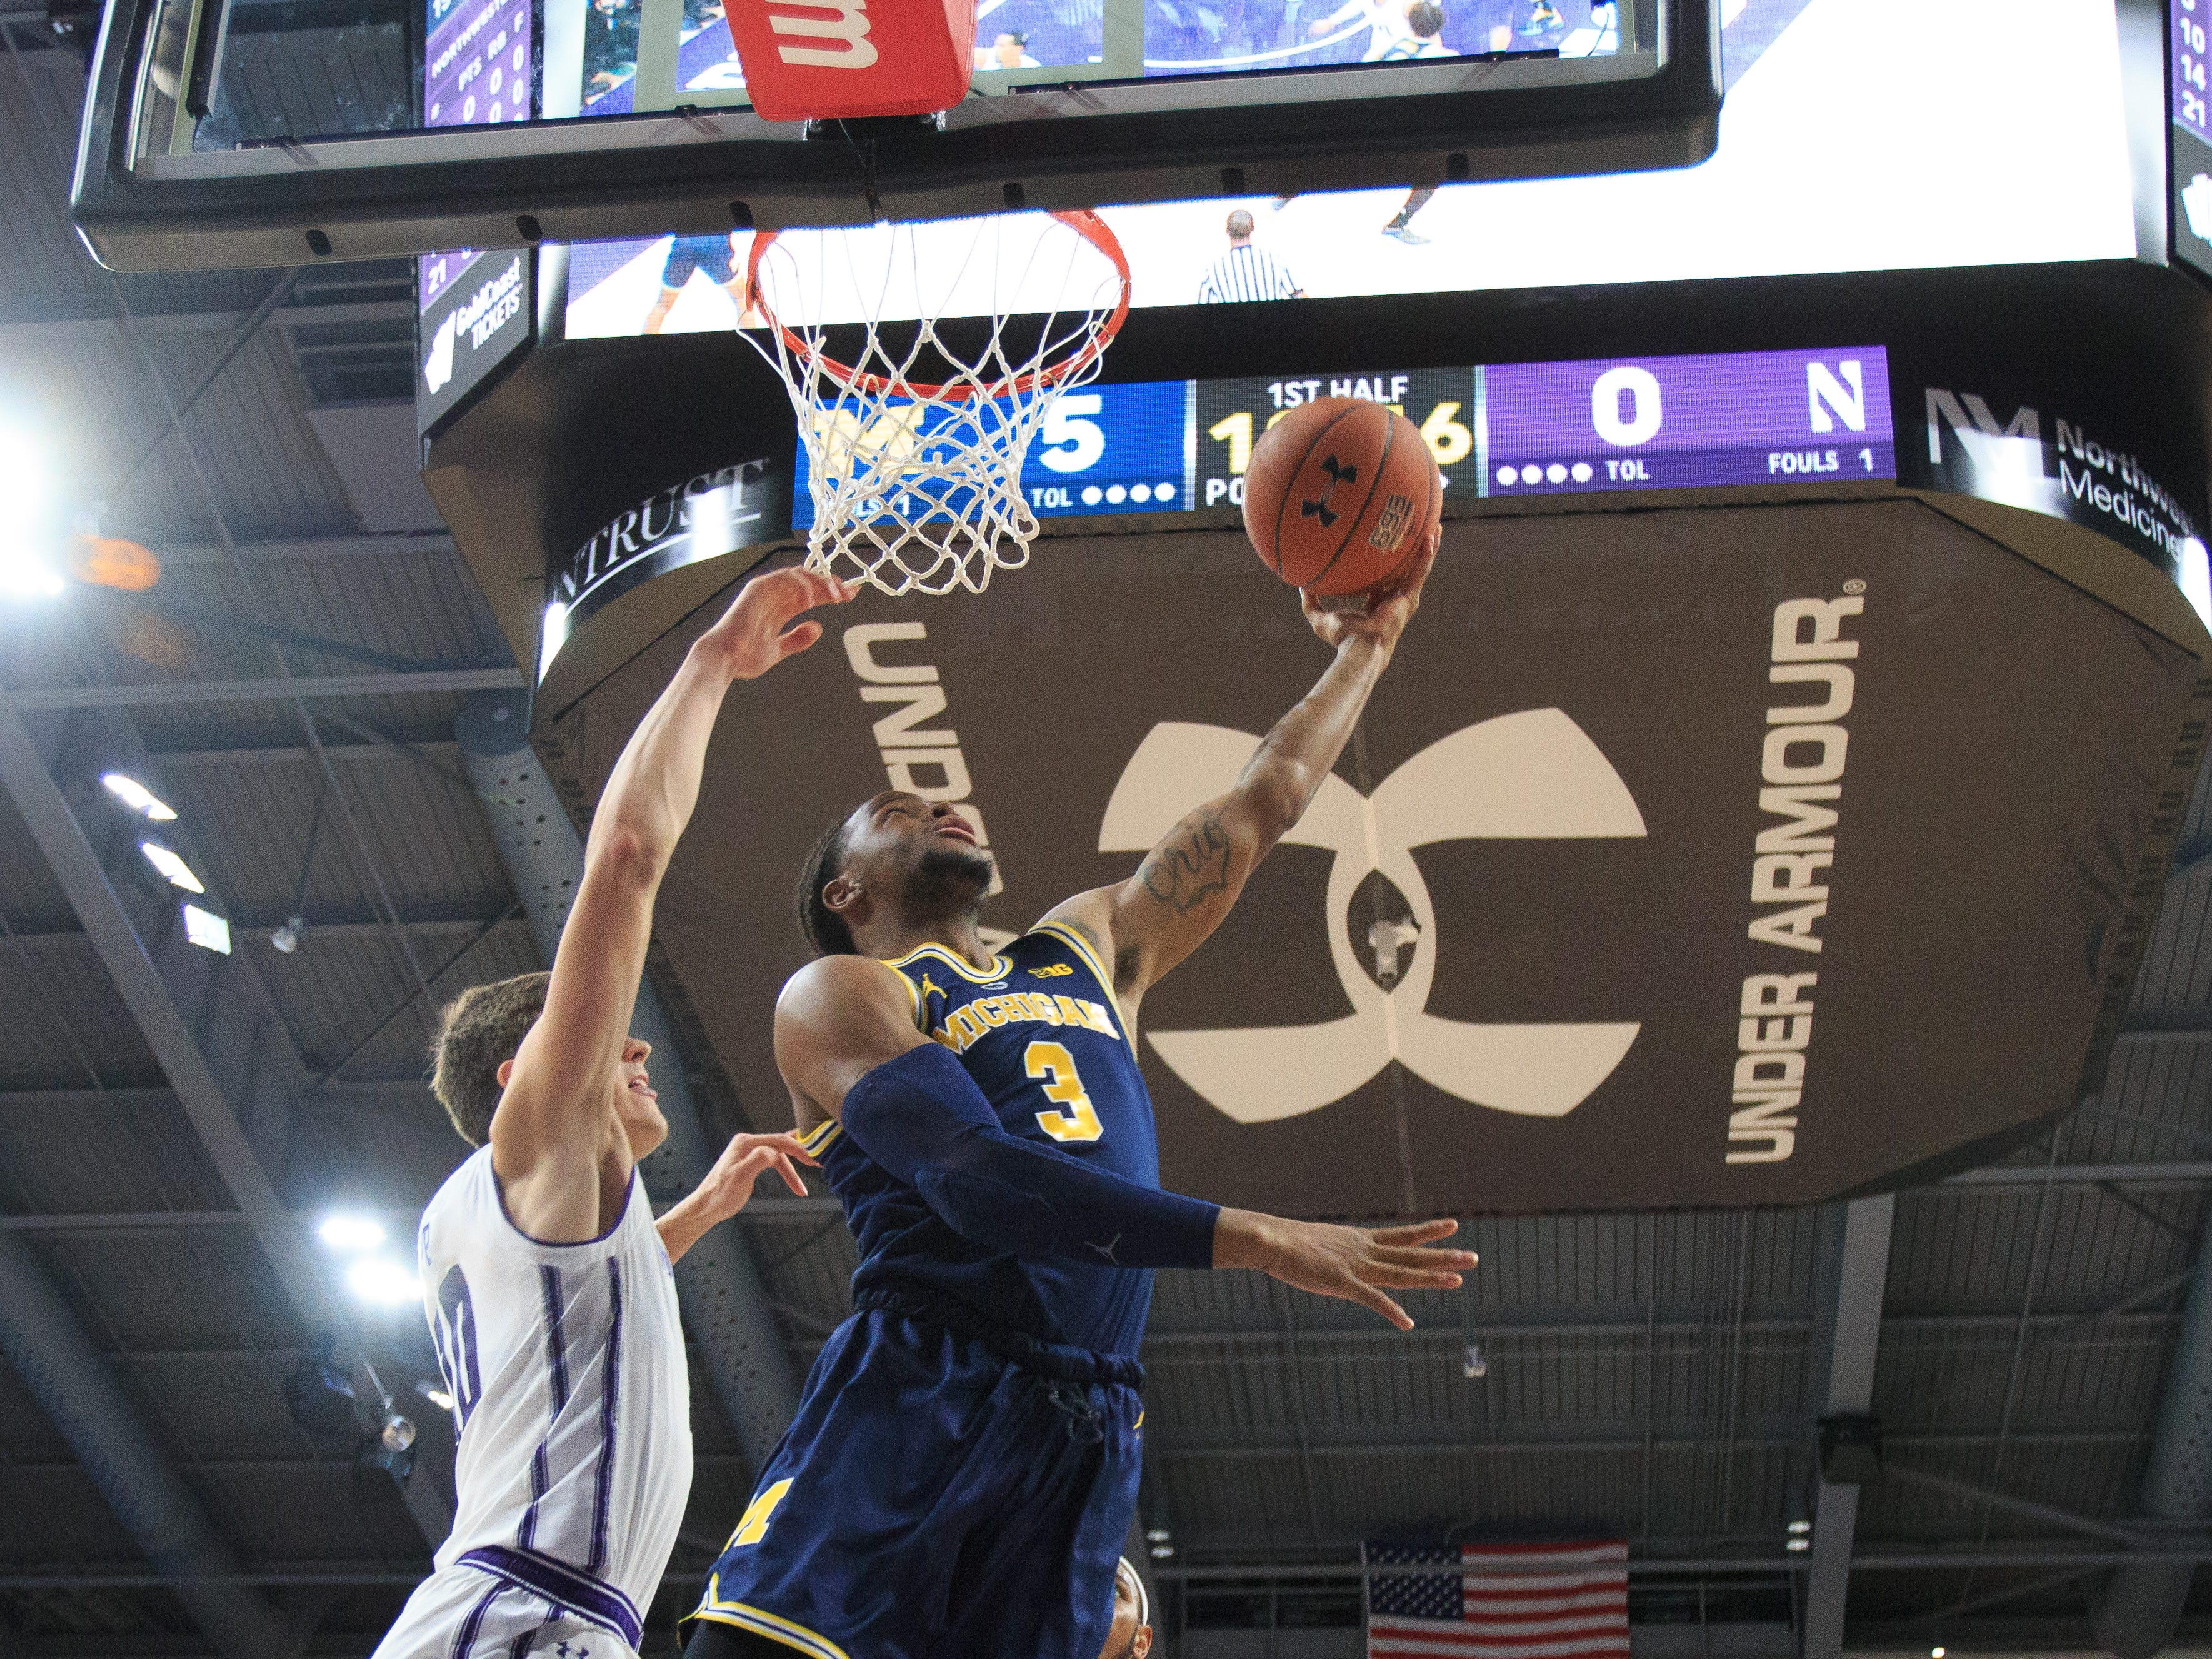 Michigan's Zavier Simpson drives to the basket during the first half against Northwestern at Welsh-Ryan Arena on Dec. 4, 2018 in Evanston, Ill.